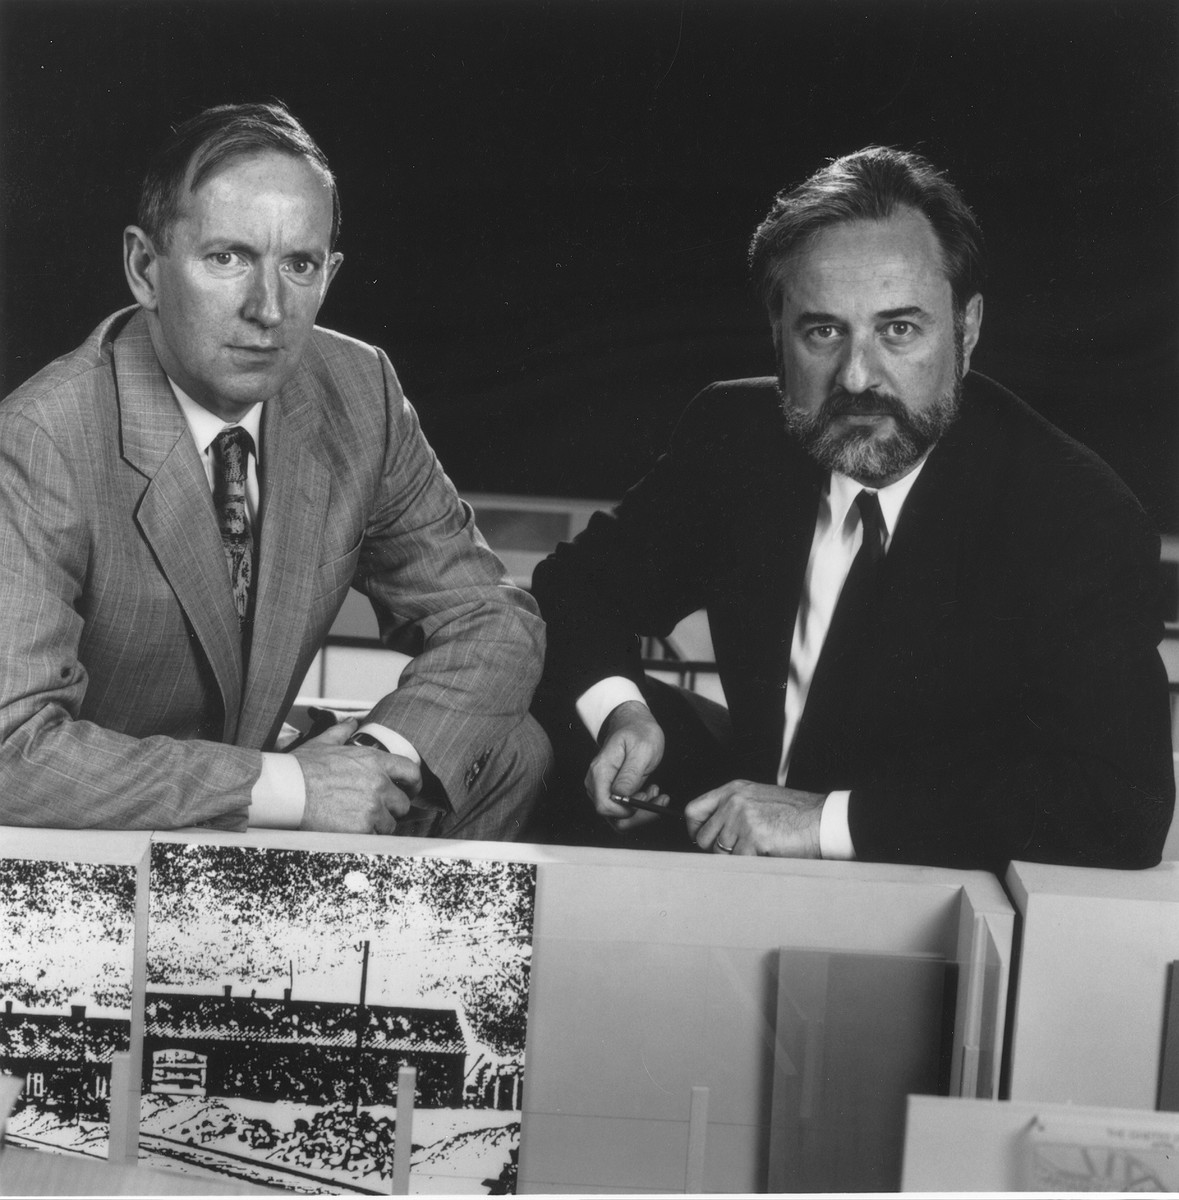 Permanent exhibition director Martin Smith and designer Ralph Appelbaum pose next to the models for the permanent exhibition at the U.S. Holocaust Memorial Museum.